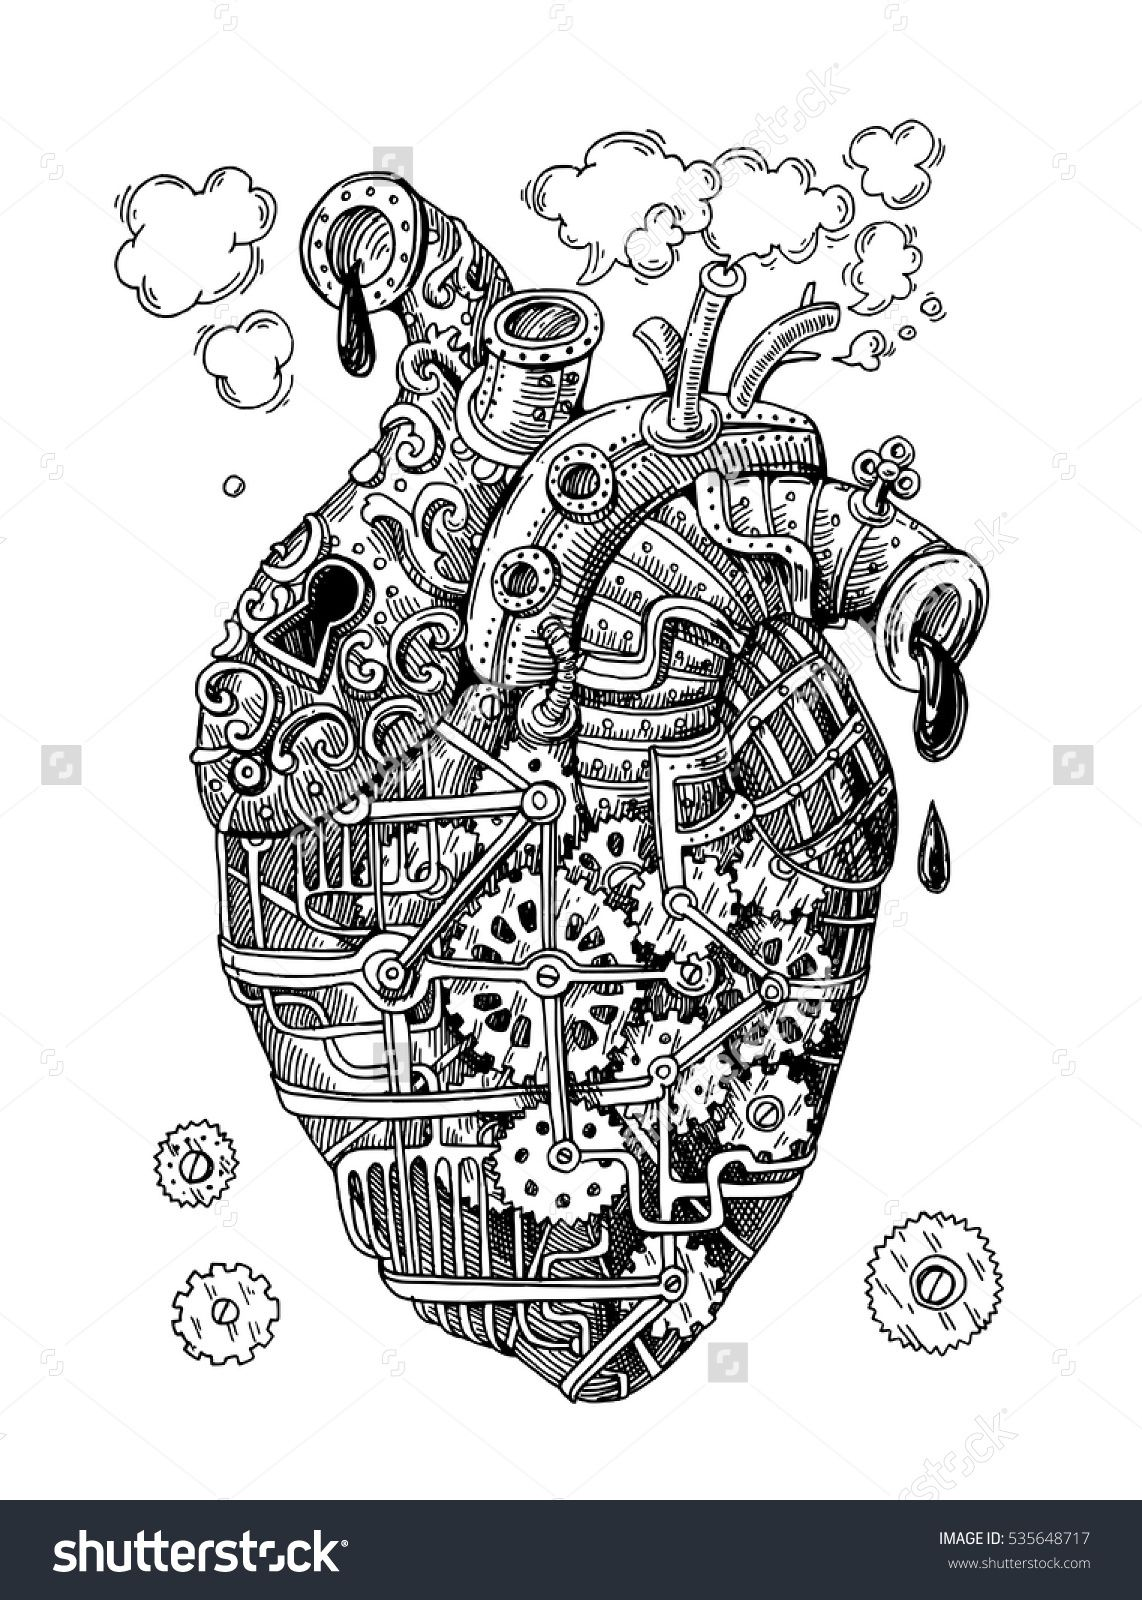 Illustration Mechanical Heart Hand Drawn Vector